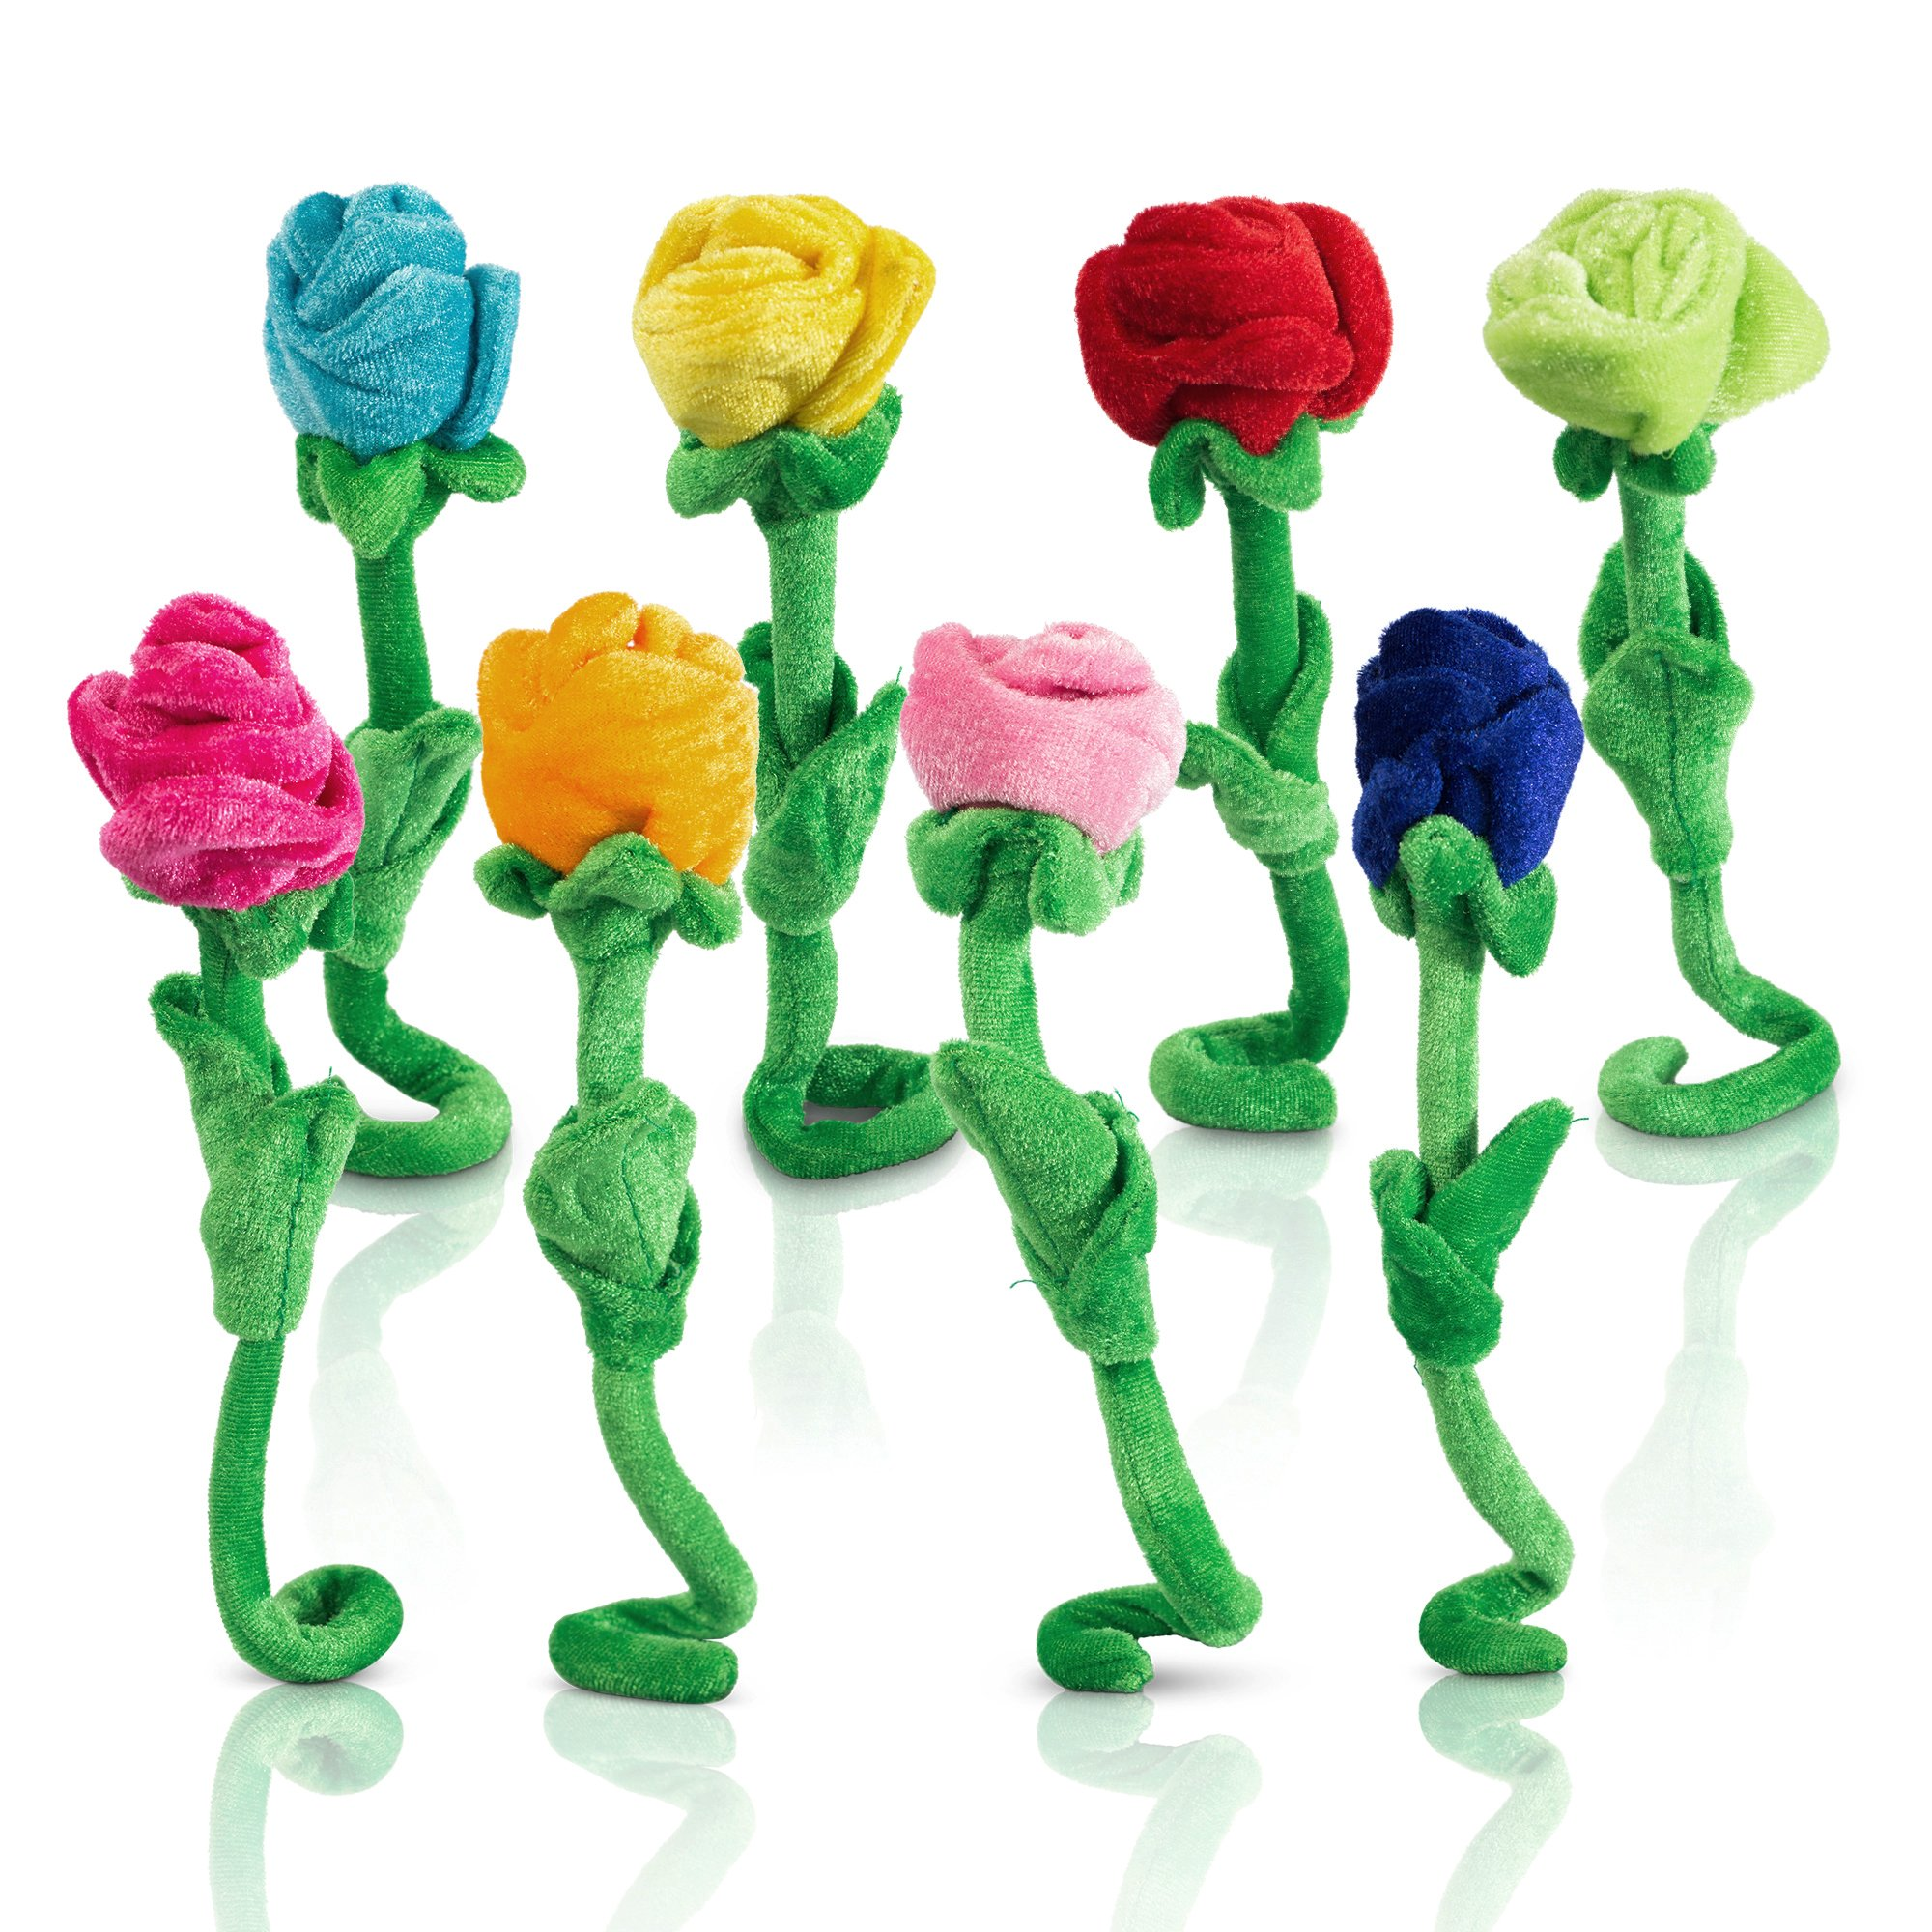 Rose Plush Flower Stuffed Rose With Bendable Stems 8 Pieces Colorful Flower Toy, 12 Inches